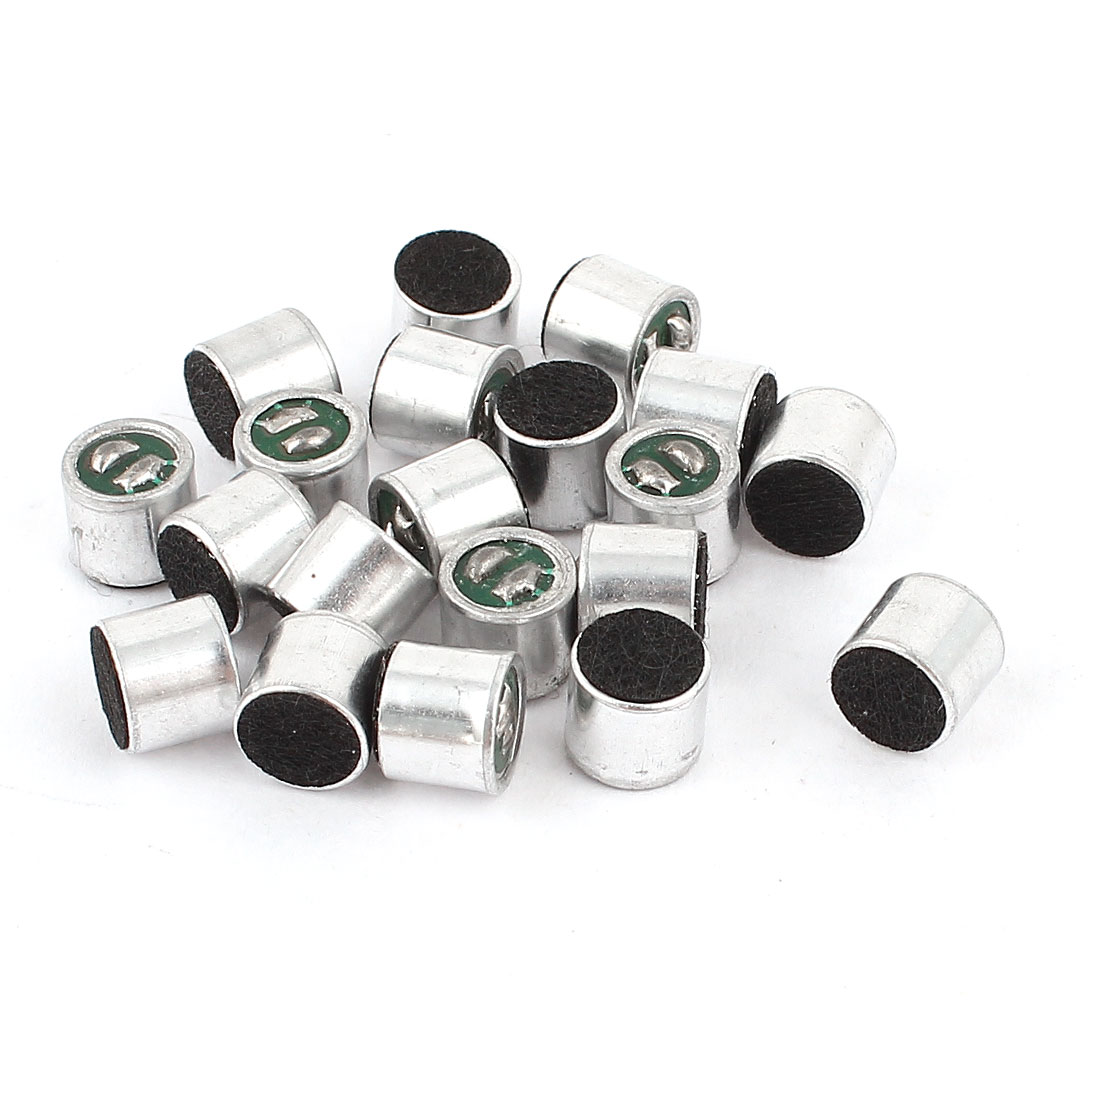 20 Pcs Cylindrical SMD Electret Condenser Microphone Pick-up 6mmx5mm Replacement